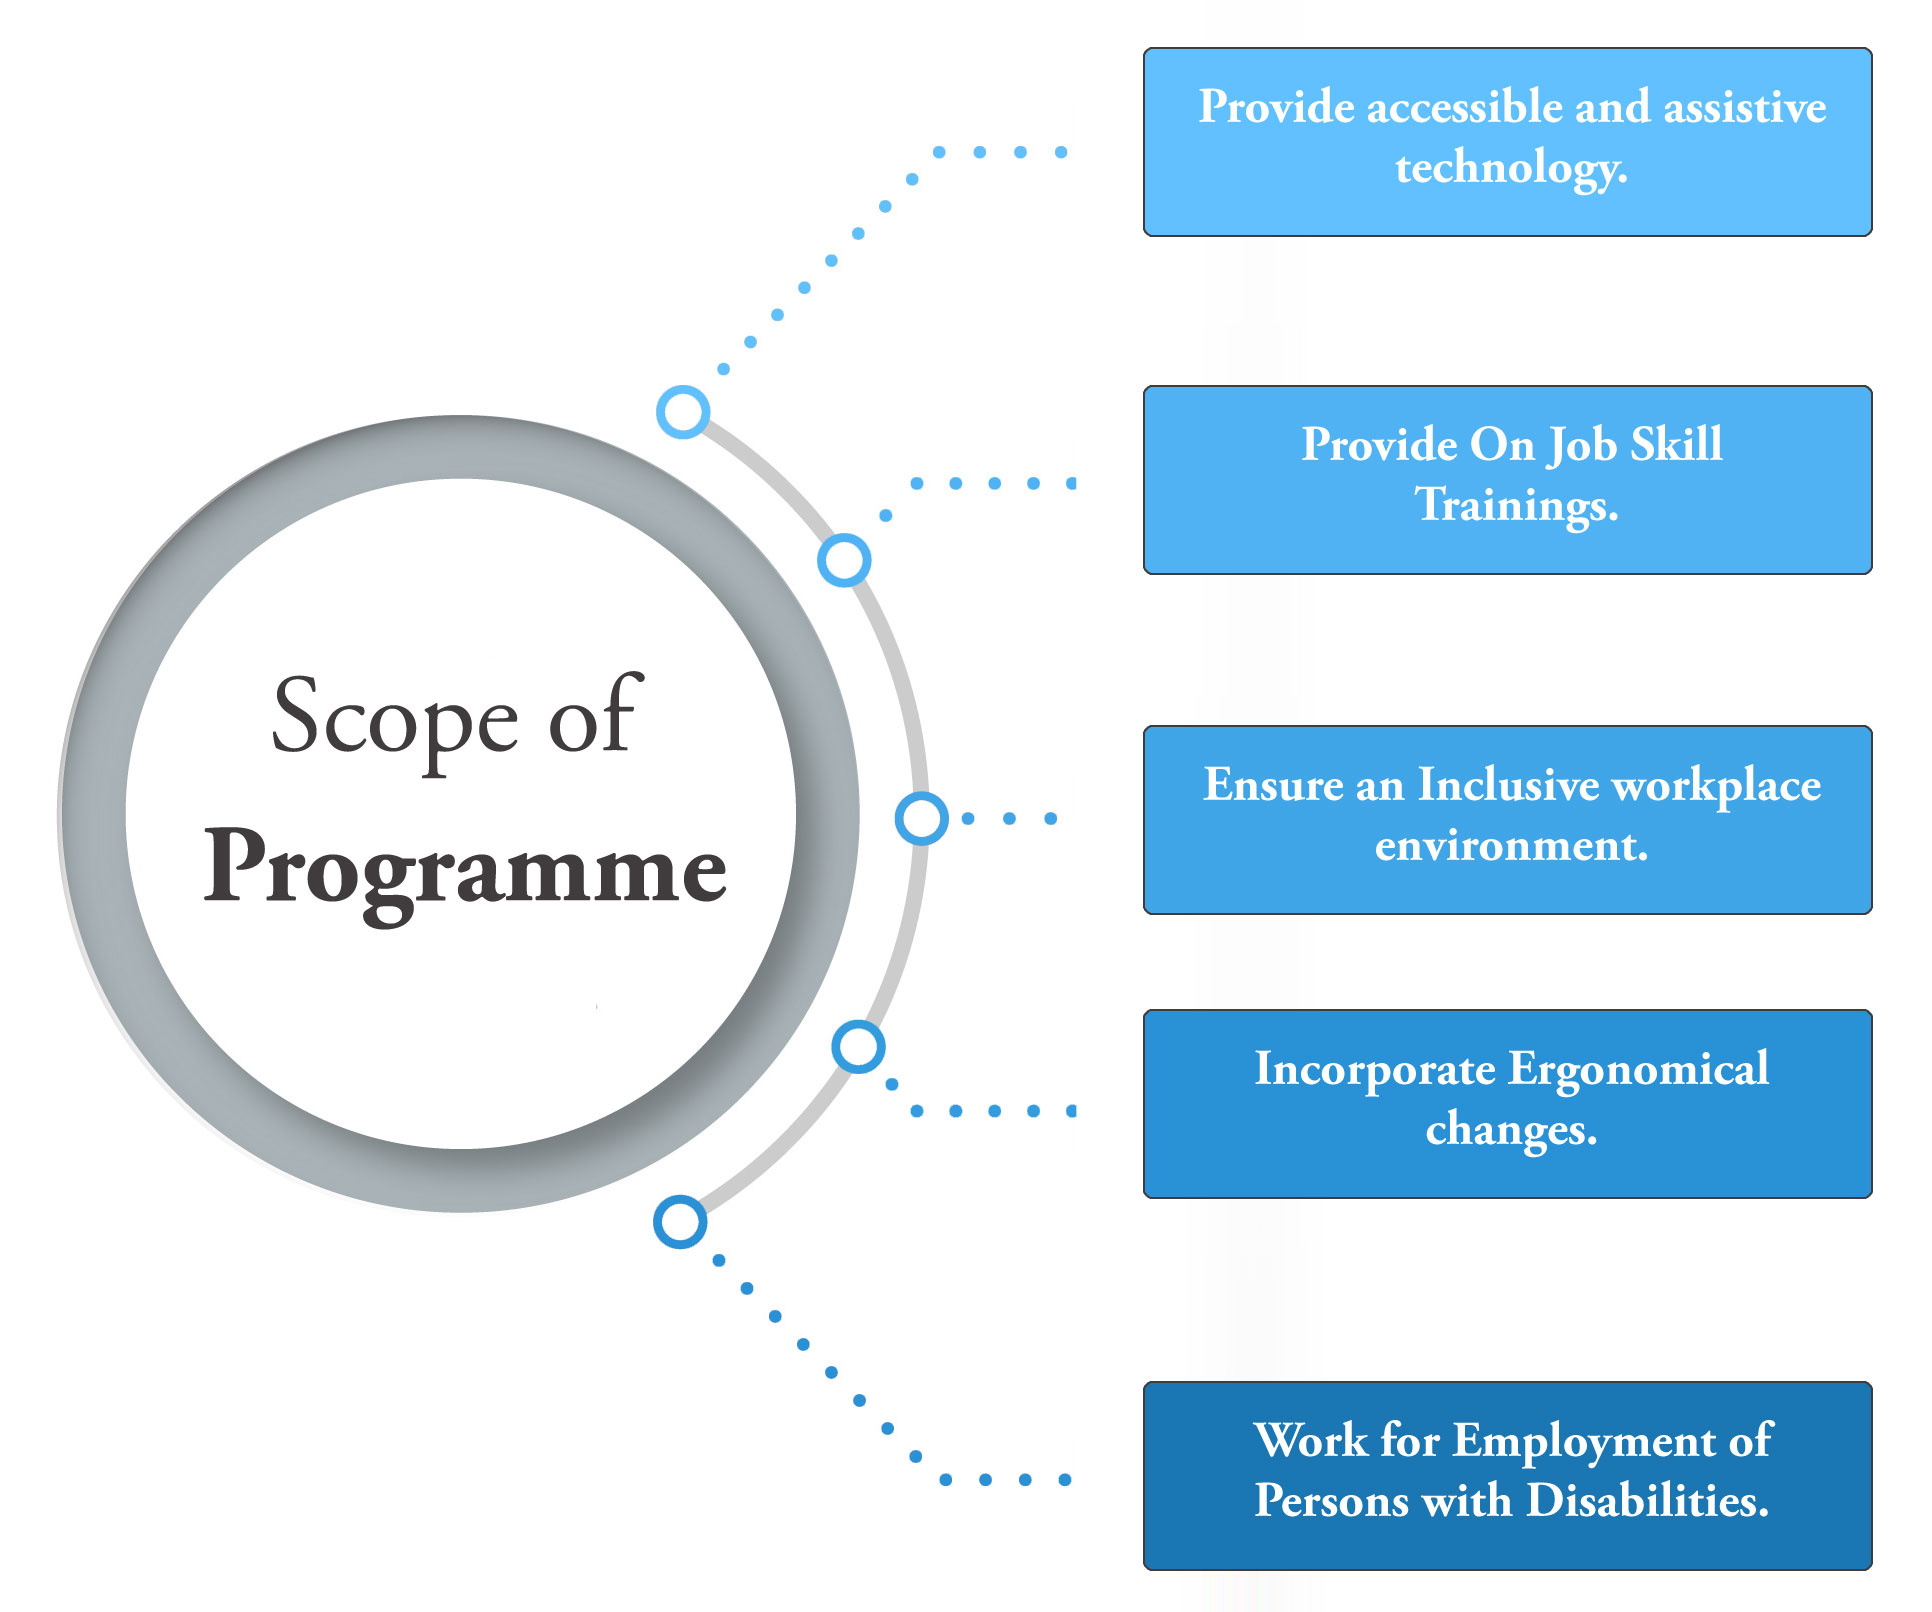 scope-of-programe-img2-csrminda-2020